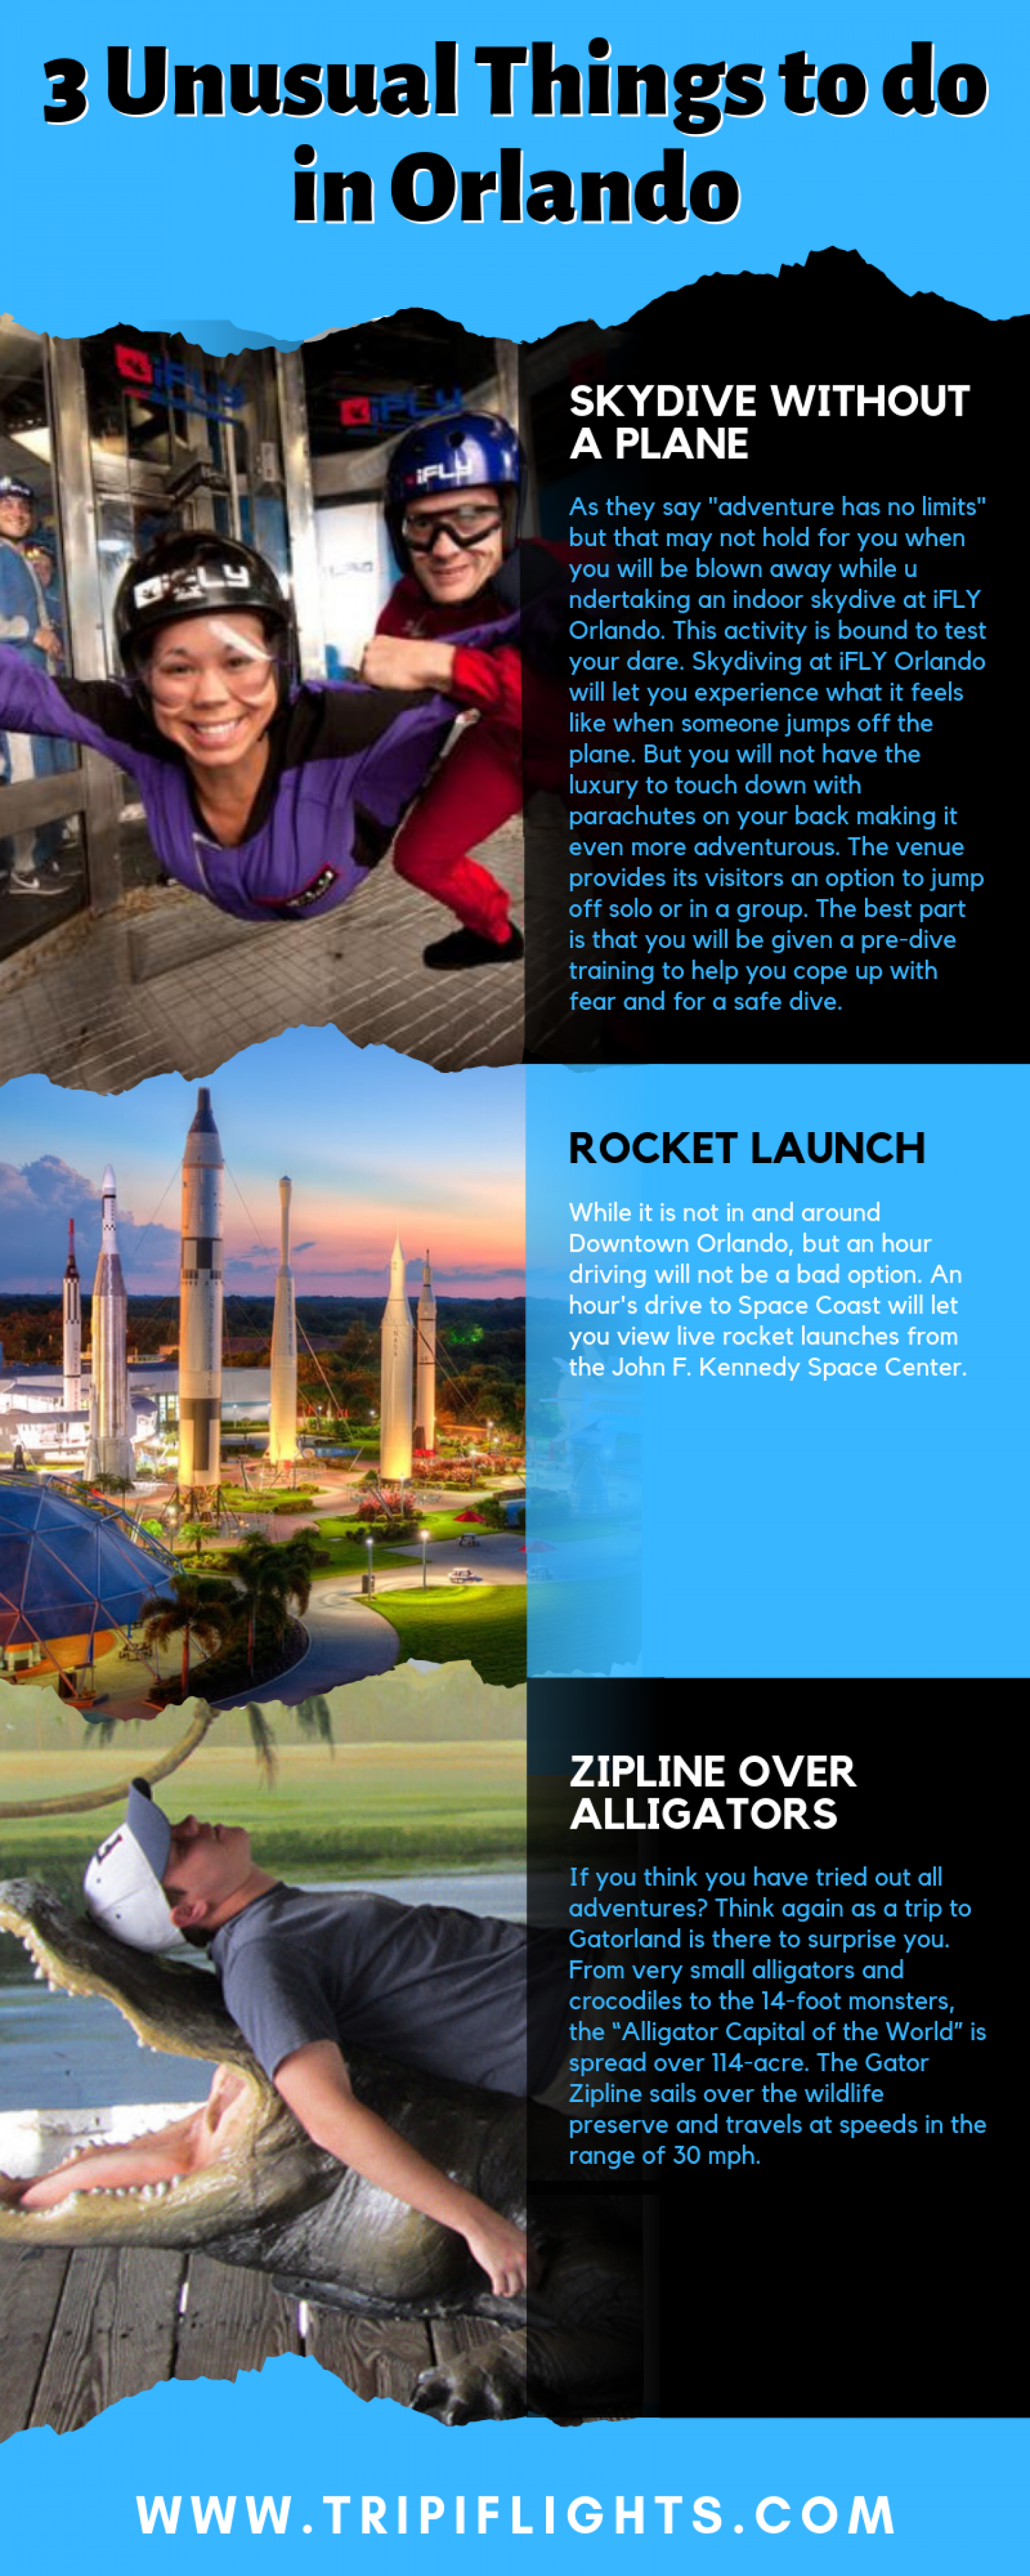 3 Unusual Things to do in Orlando Infographic